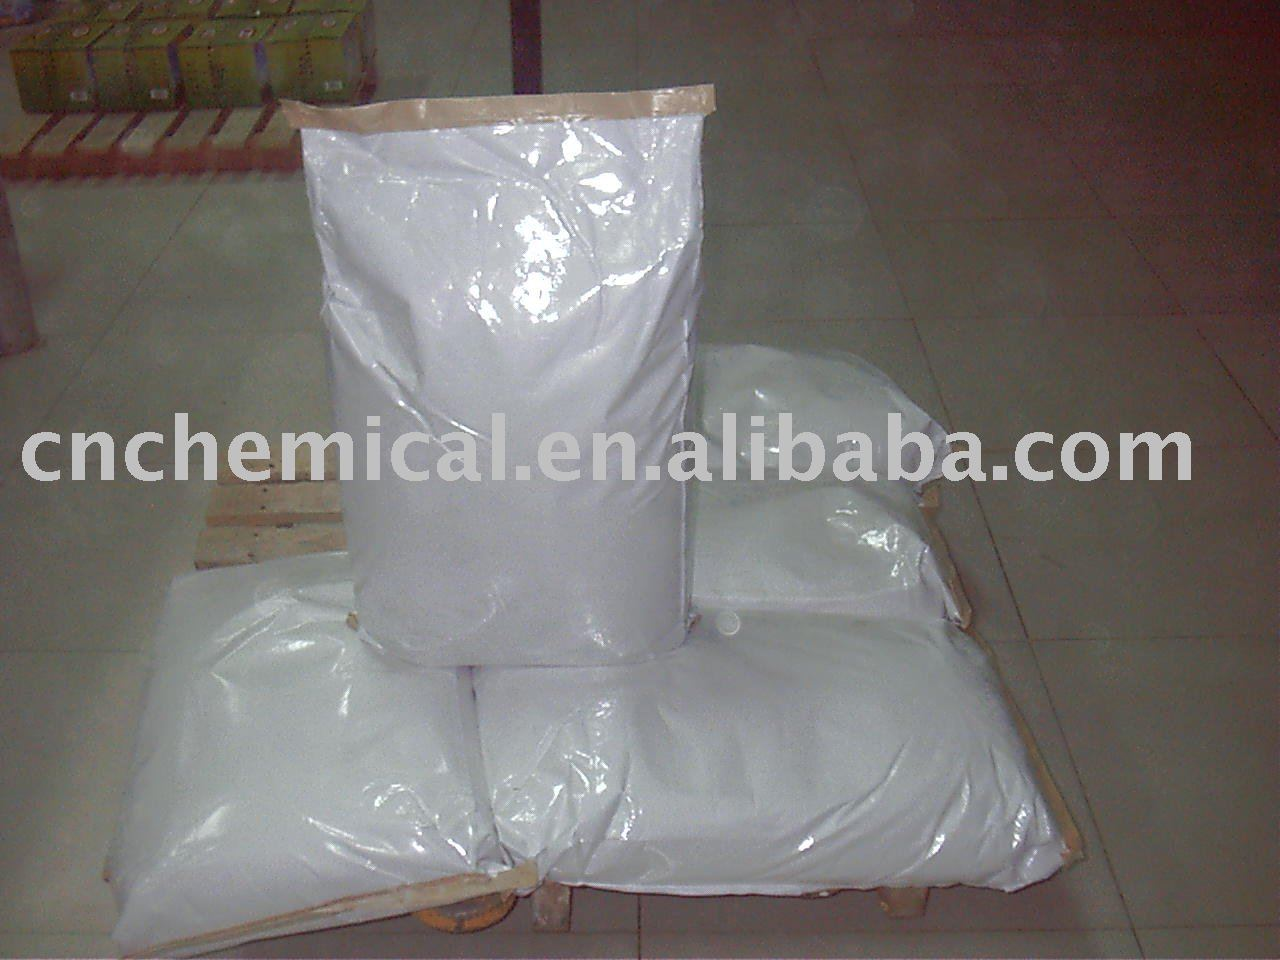 Glucono Delta Lactone(GDL) Food Additive